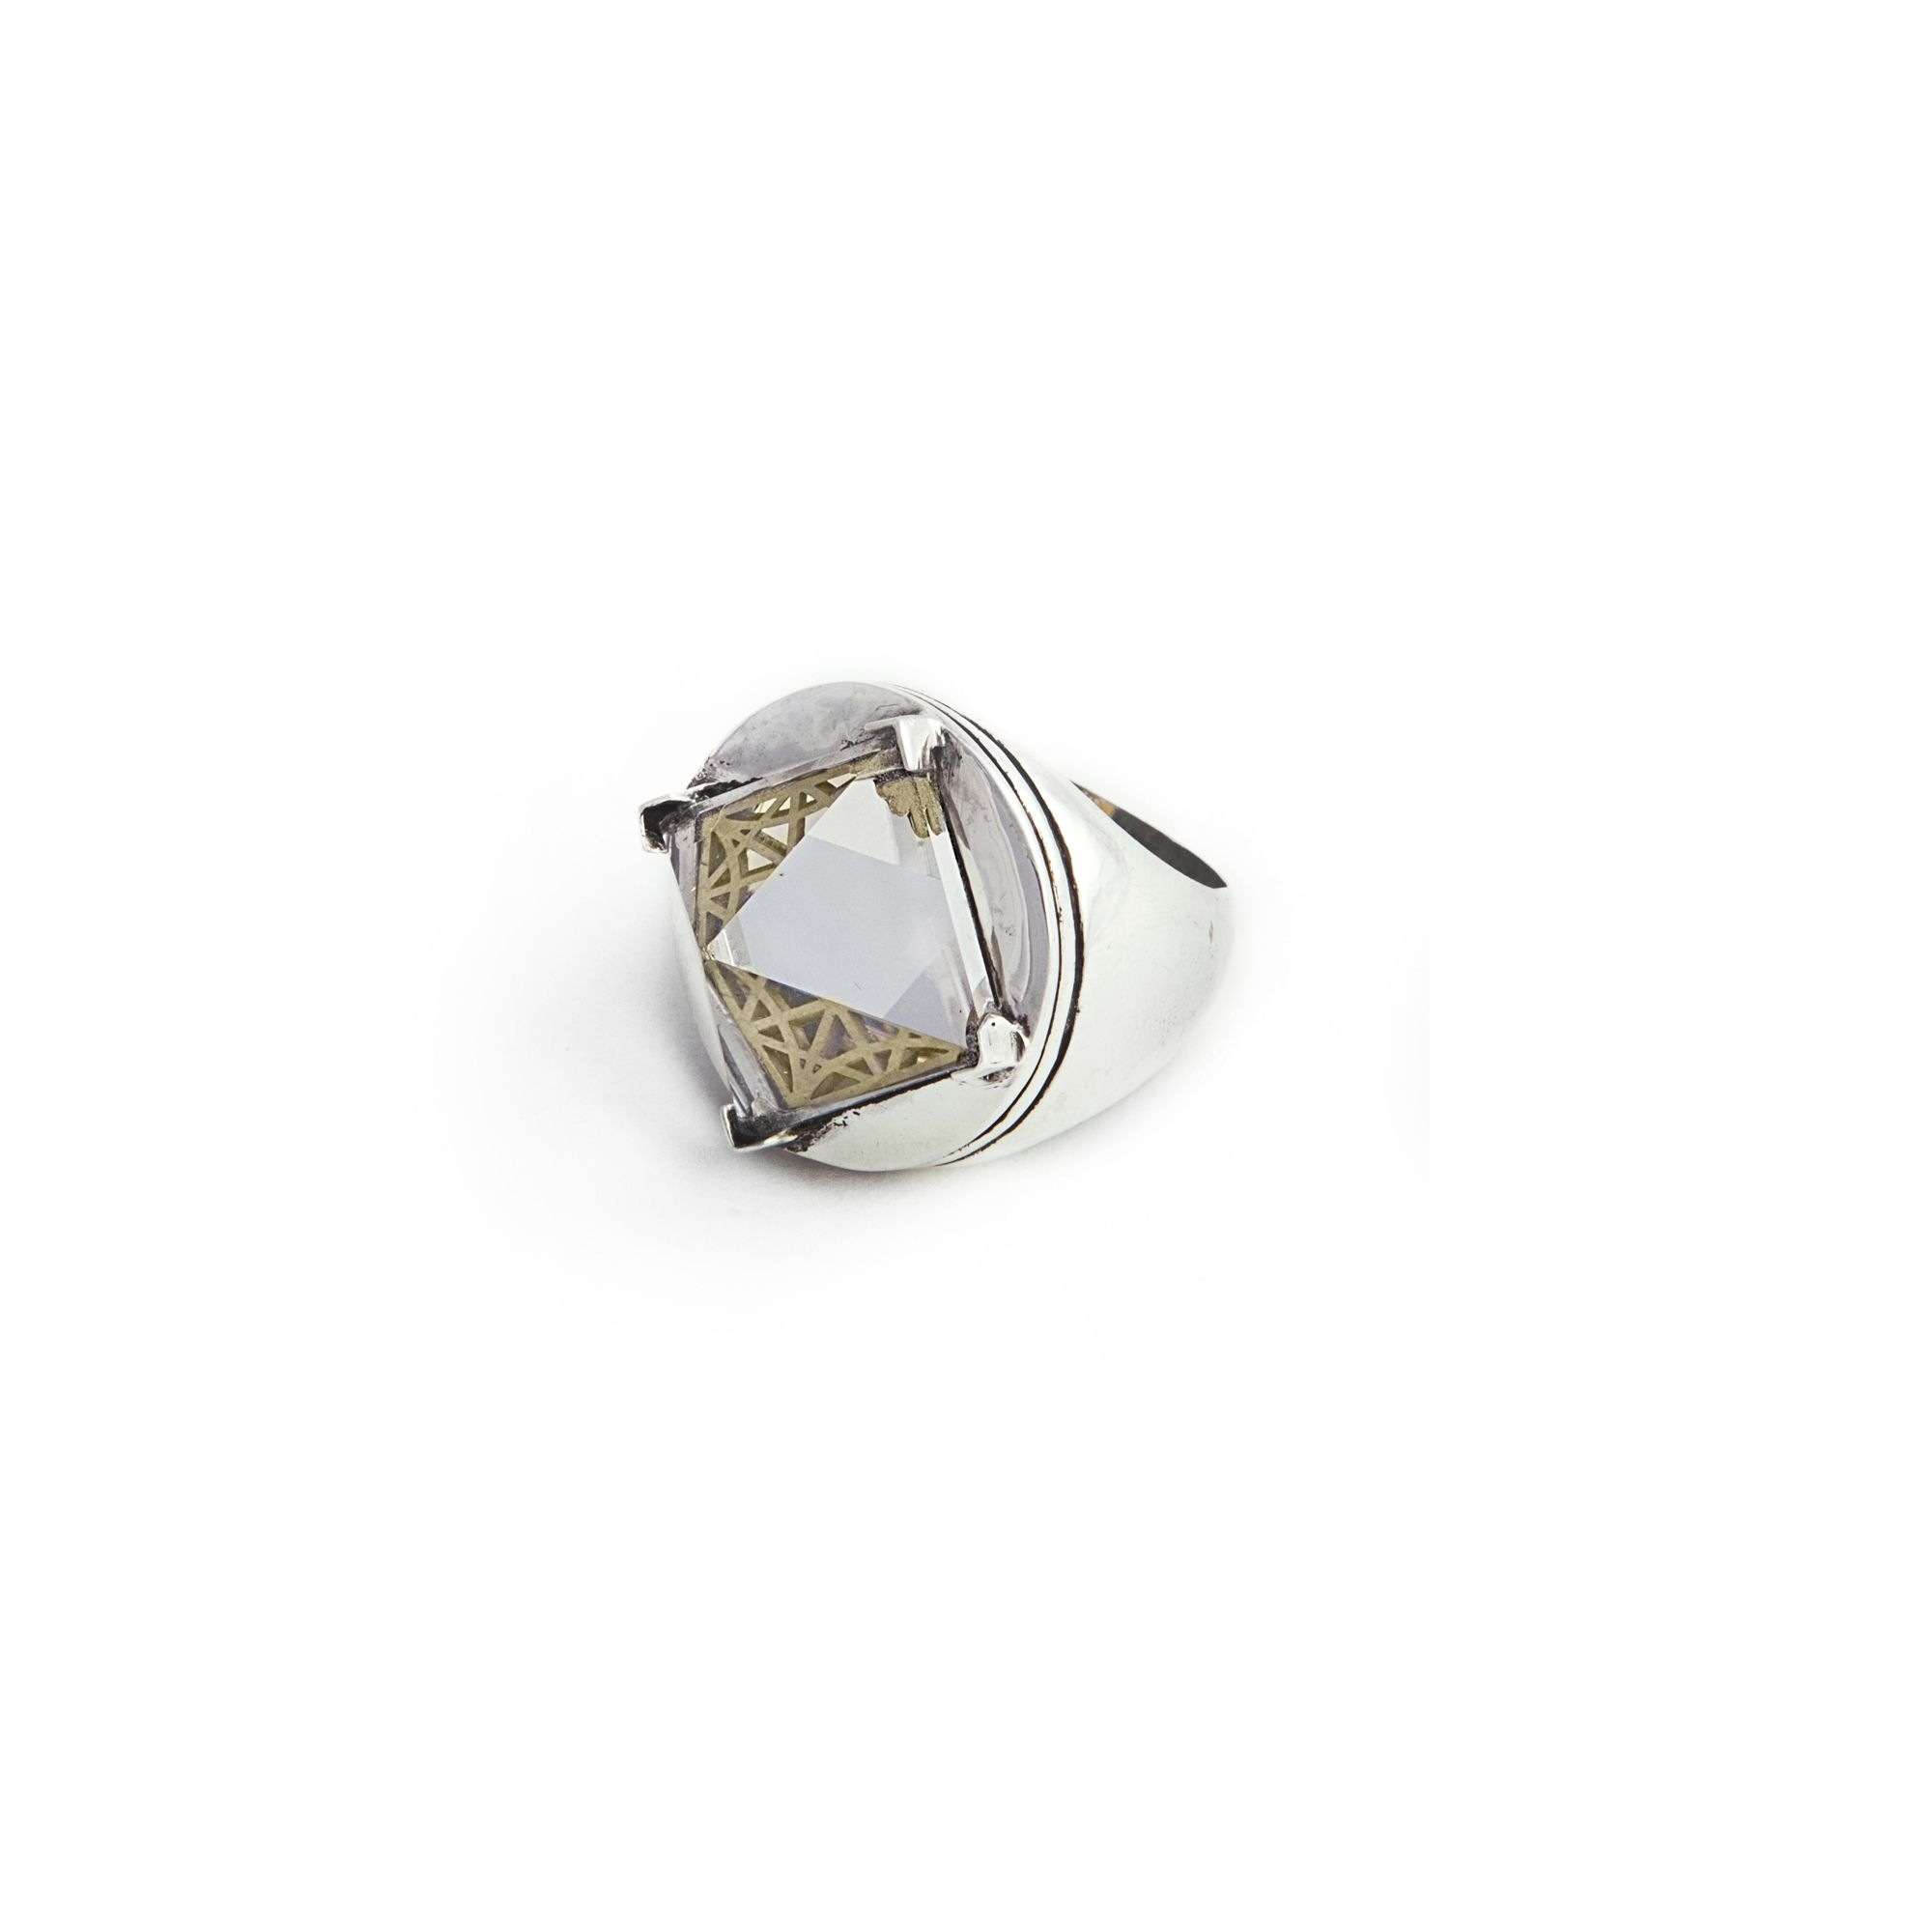 Silver 'Entropia' ring Ring in silver with pyramid